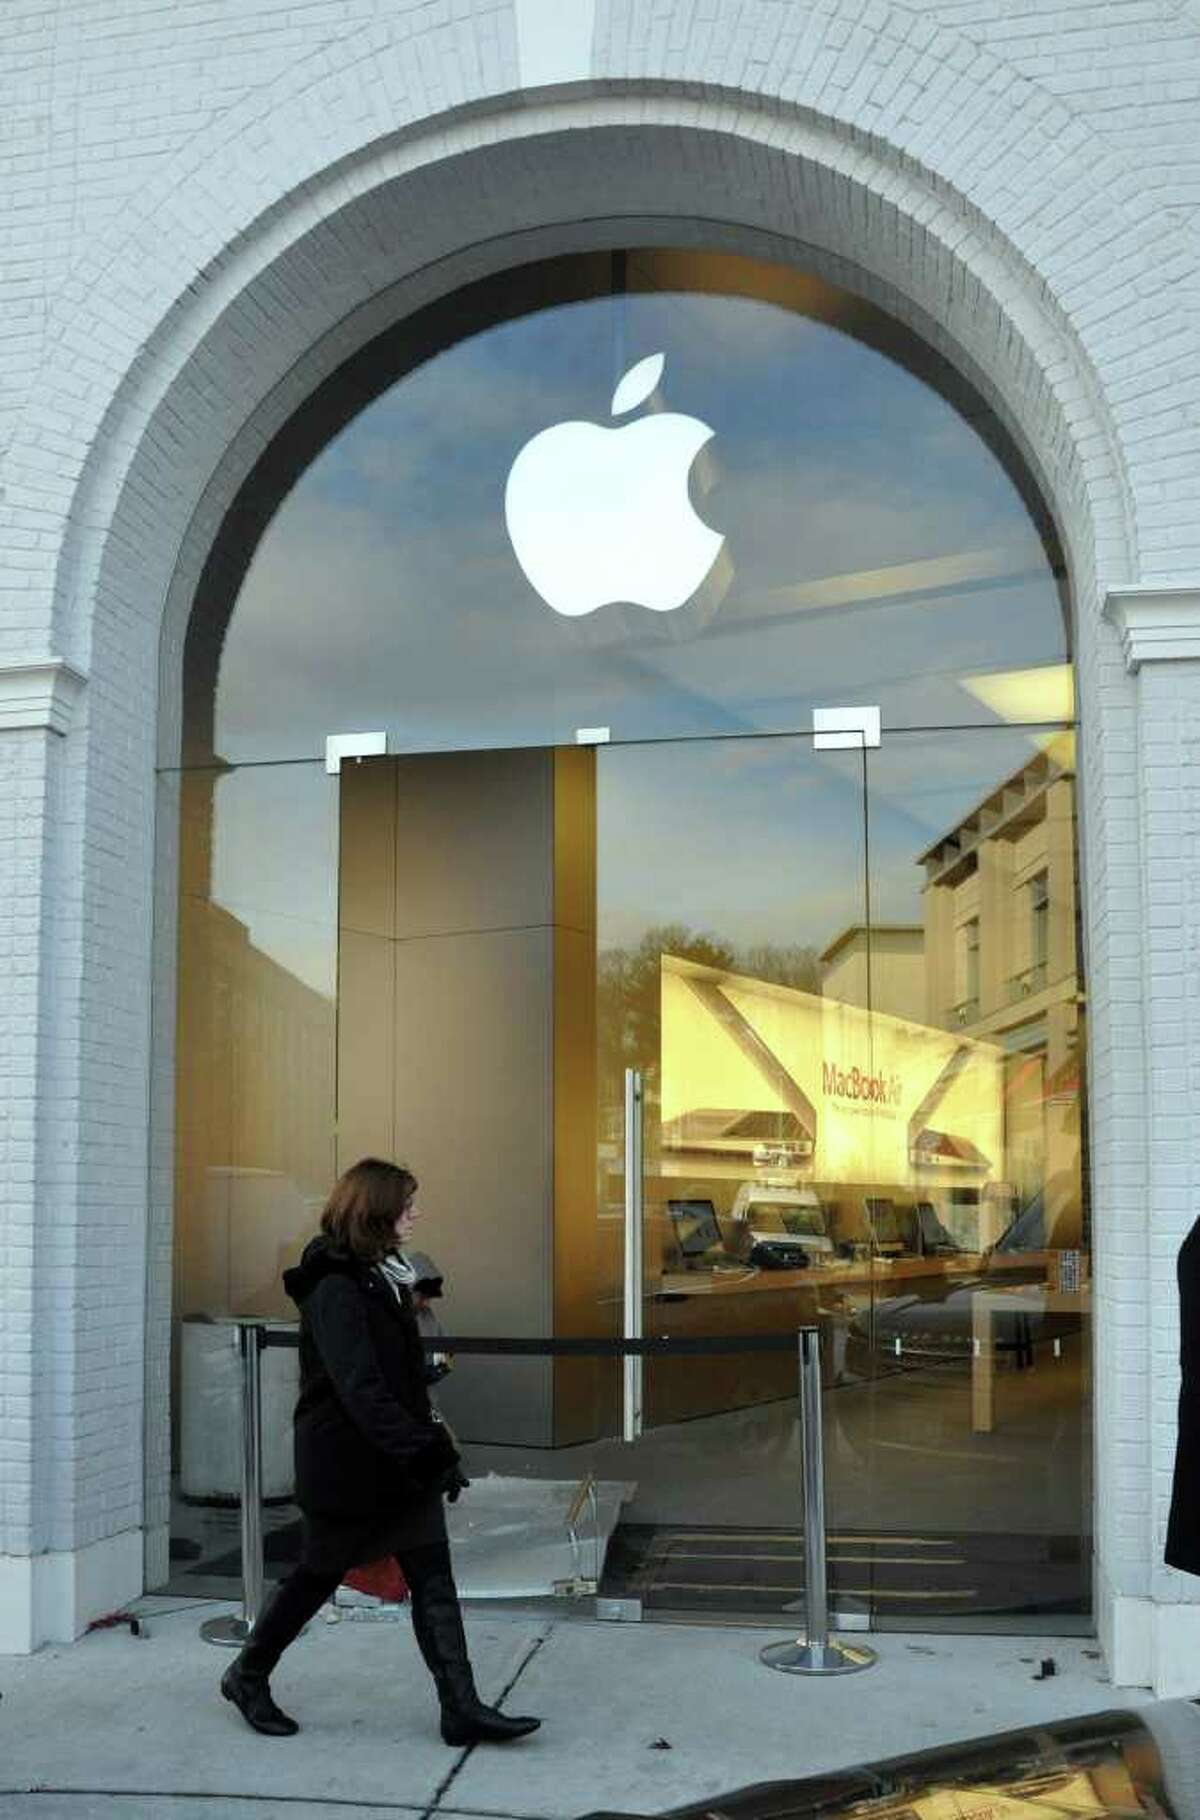 A woman walks by the broken glass door, signs of a robbery that occurred around 3a.m., at the Apple Store on Greenwich Avenue on Tuesday, Dec. 14, 2010.